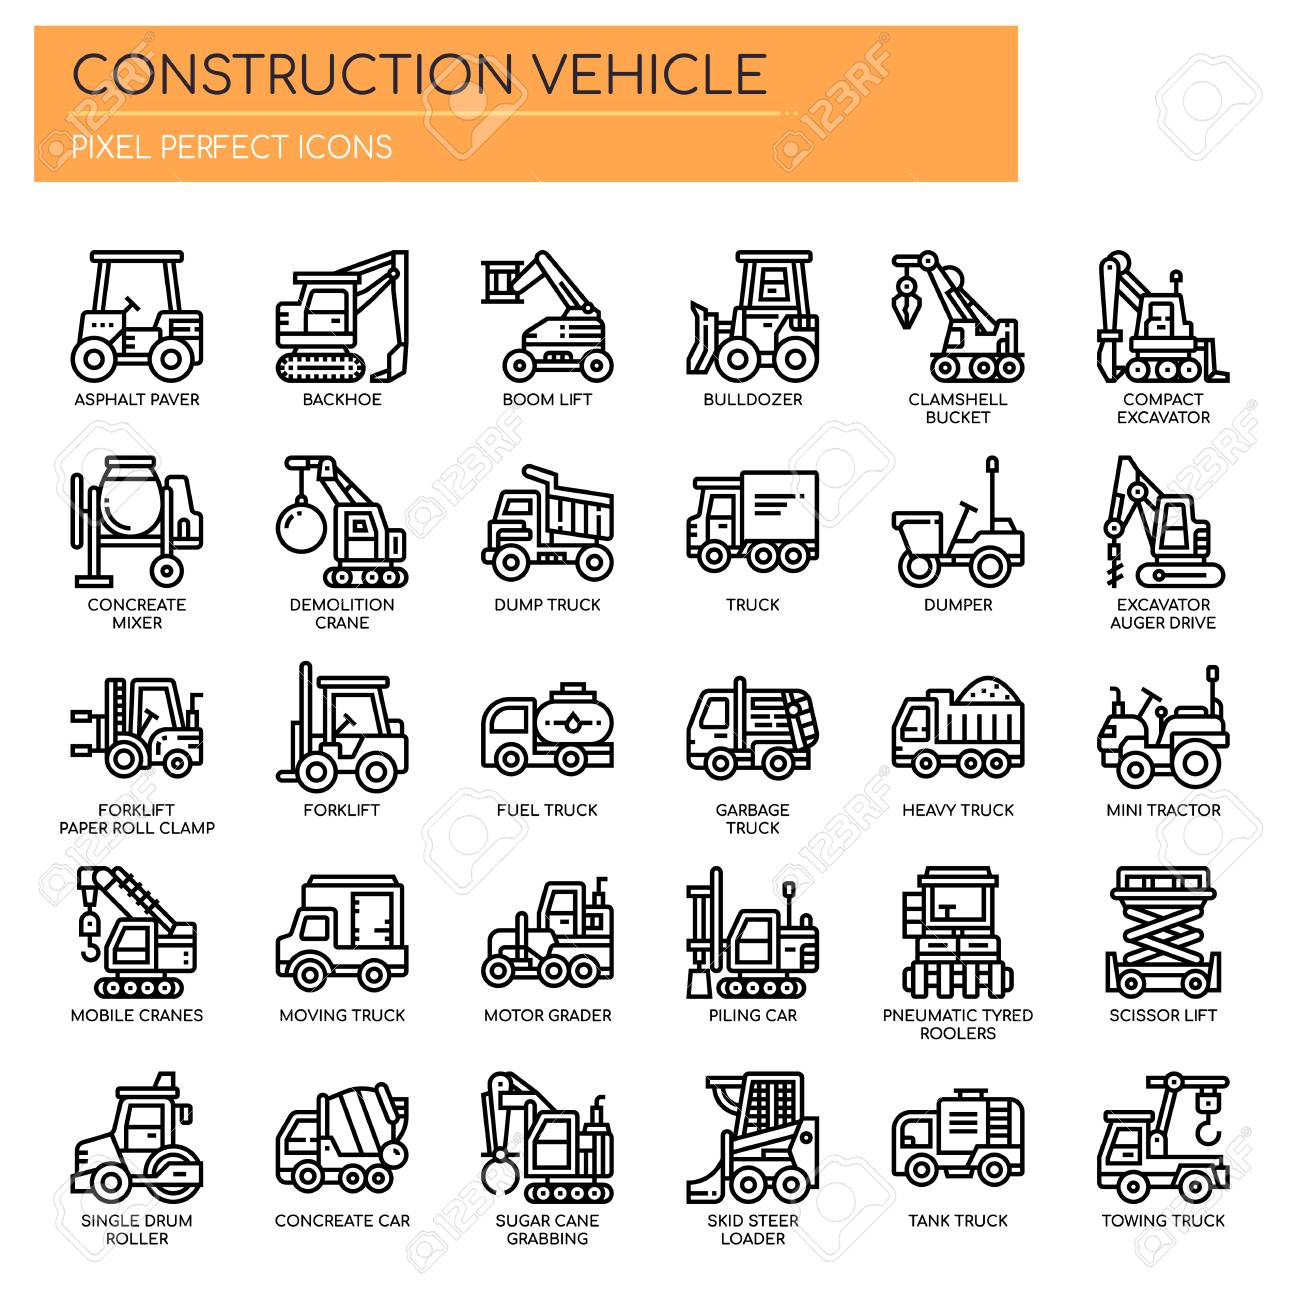 Construction Vehicle , Thin Line and Pixel Perfect Icons - 112378703